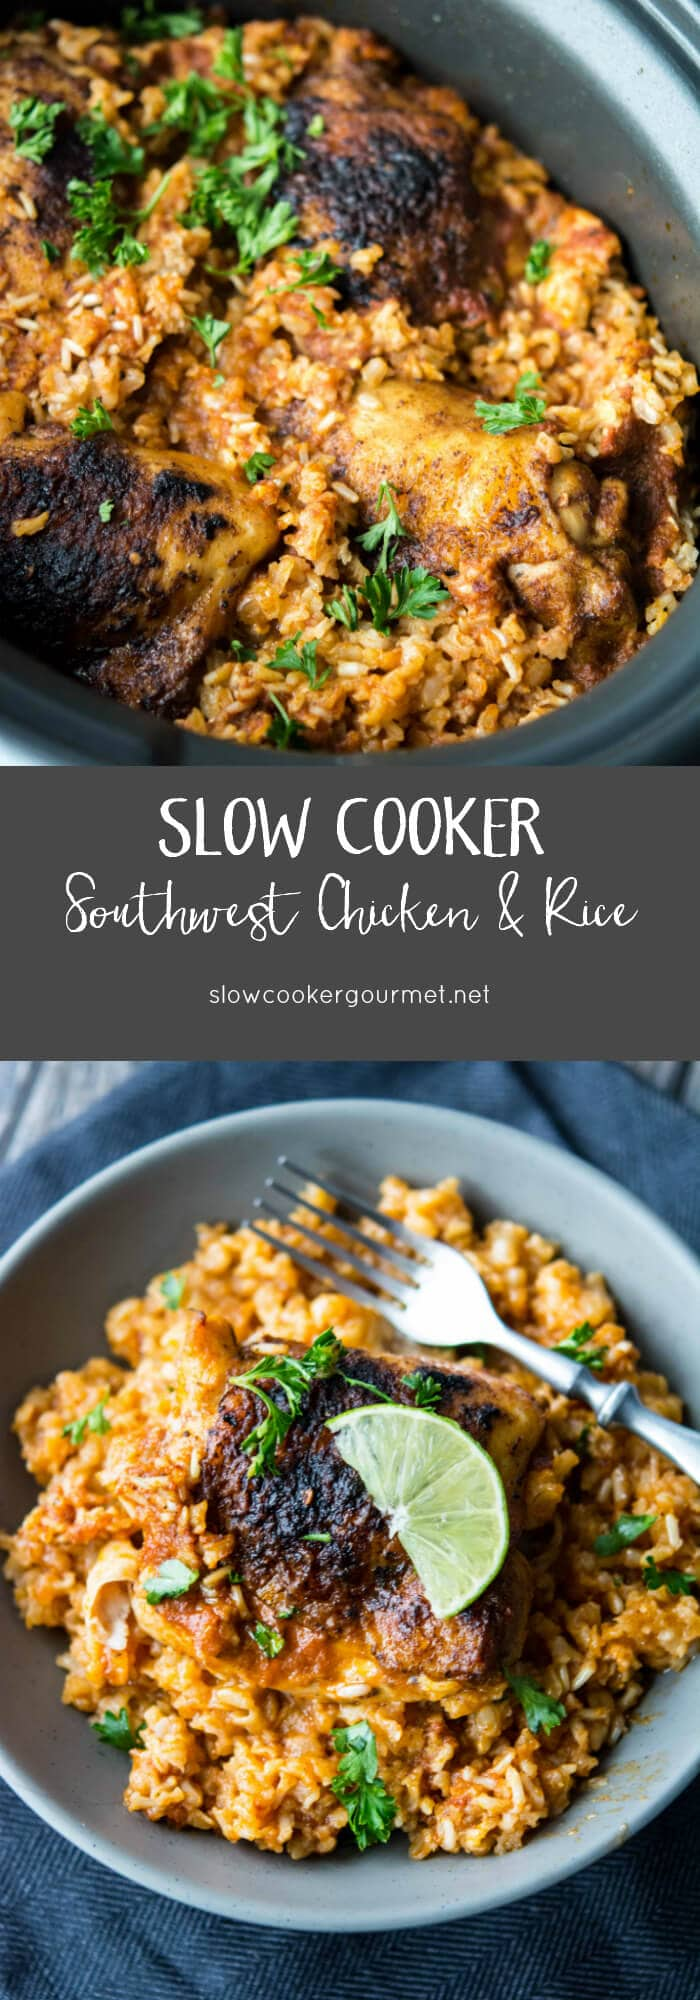 slow_cooker_southwest_chicken_&_rice_longpin